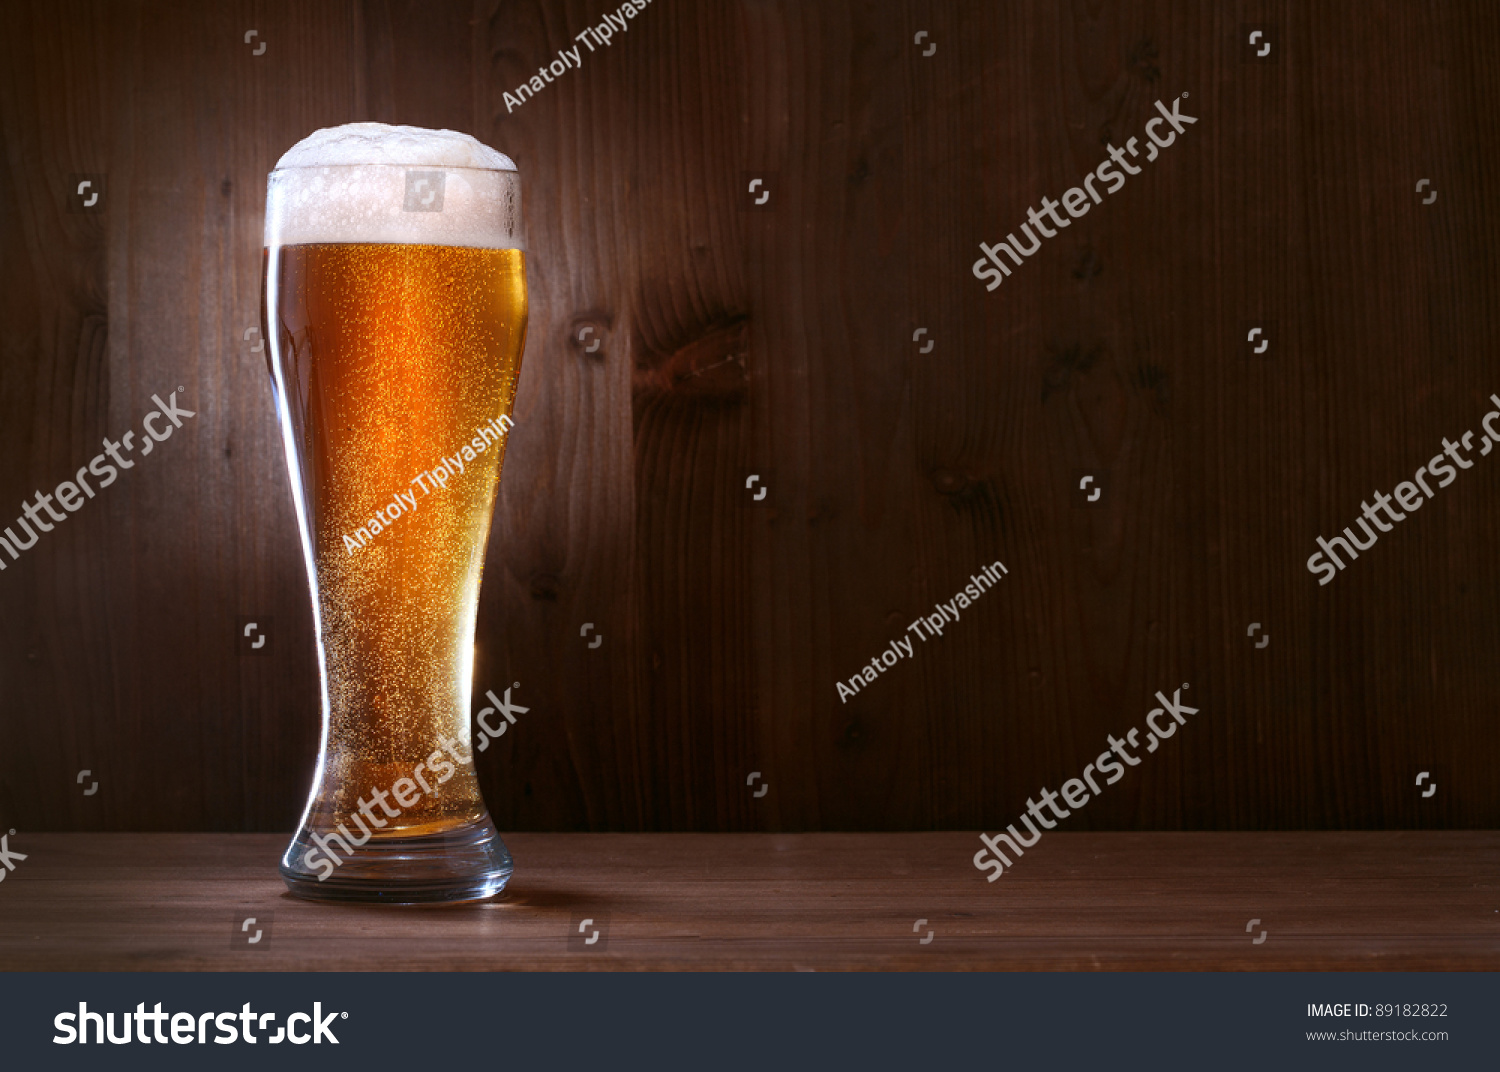 glass beer on wood - photo #6